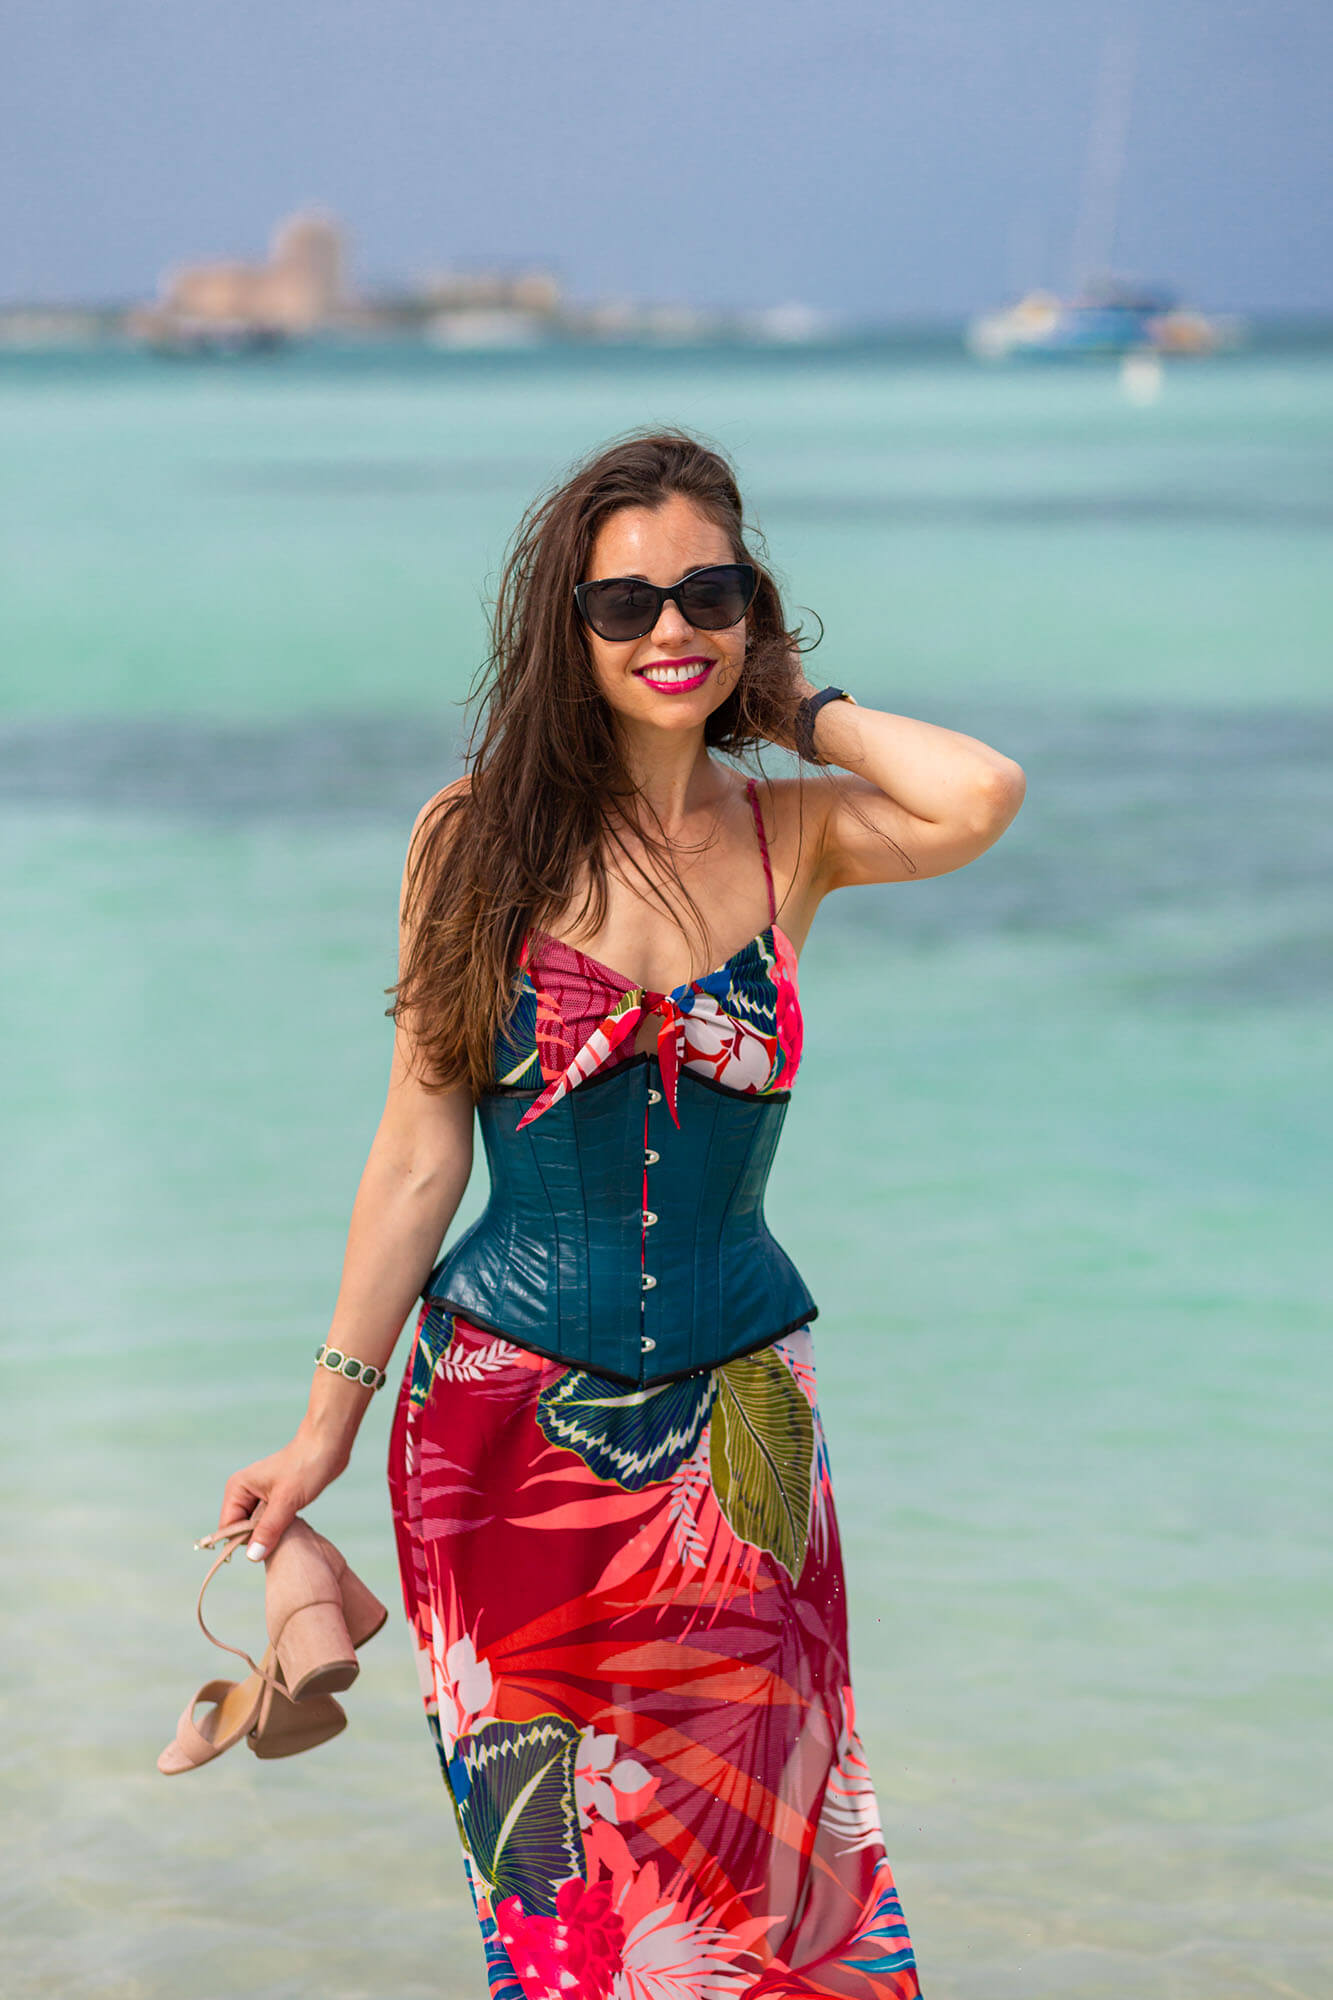 Stella in Teal Corset and Red Tropical Dress near the Ocean